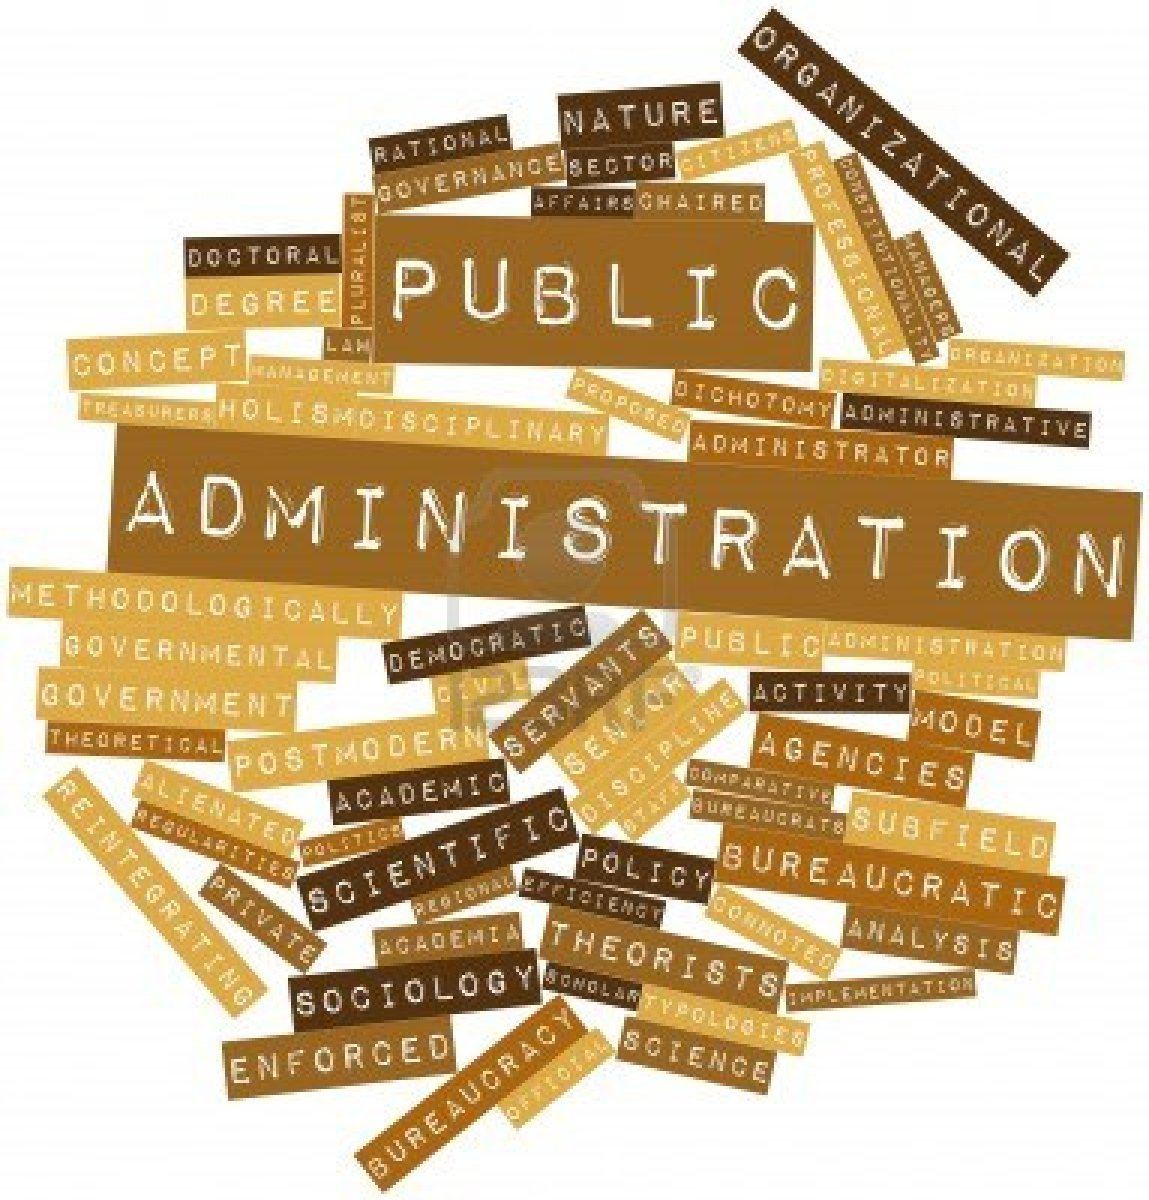 history of public administration History of public administration in nigeria nigeria is a merger of the northern protectorate and the southern protectorate the area that became nigeria has long been.